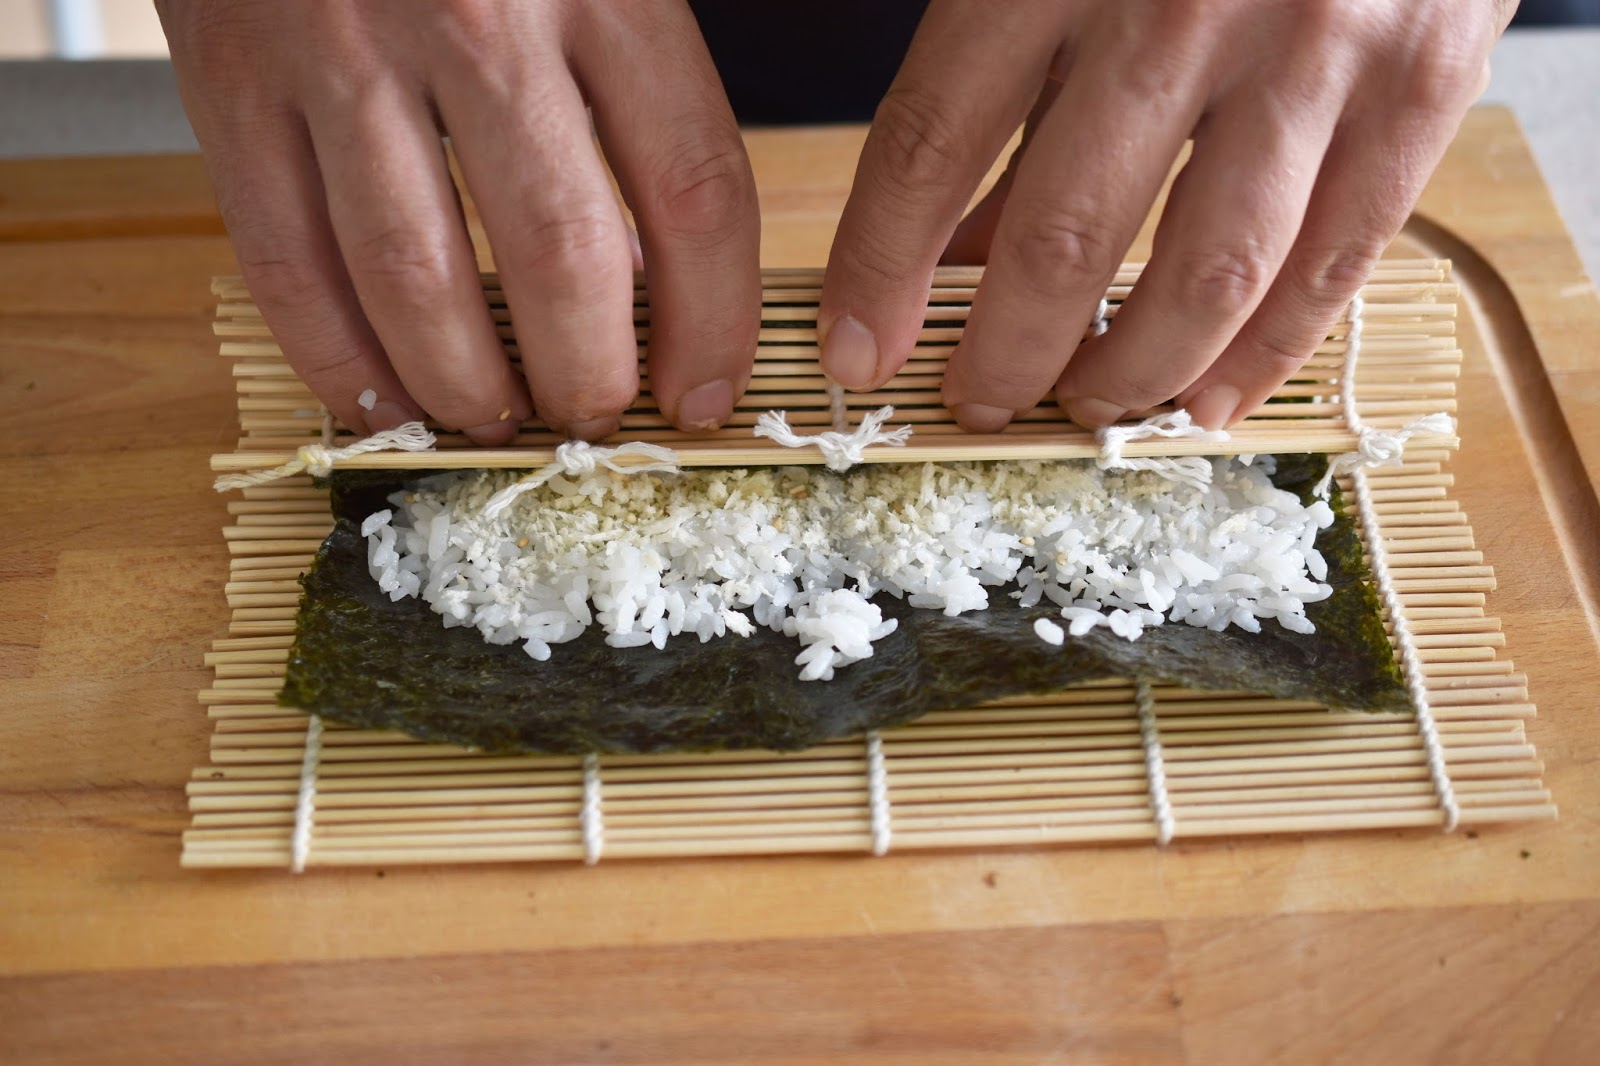 A Sushi Rolling Mat Makes Your Work Easier I Think The Secret To A  Successful Roll